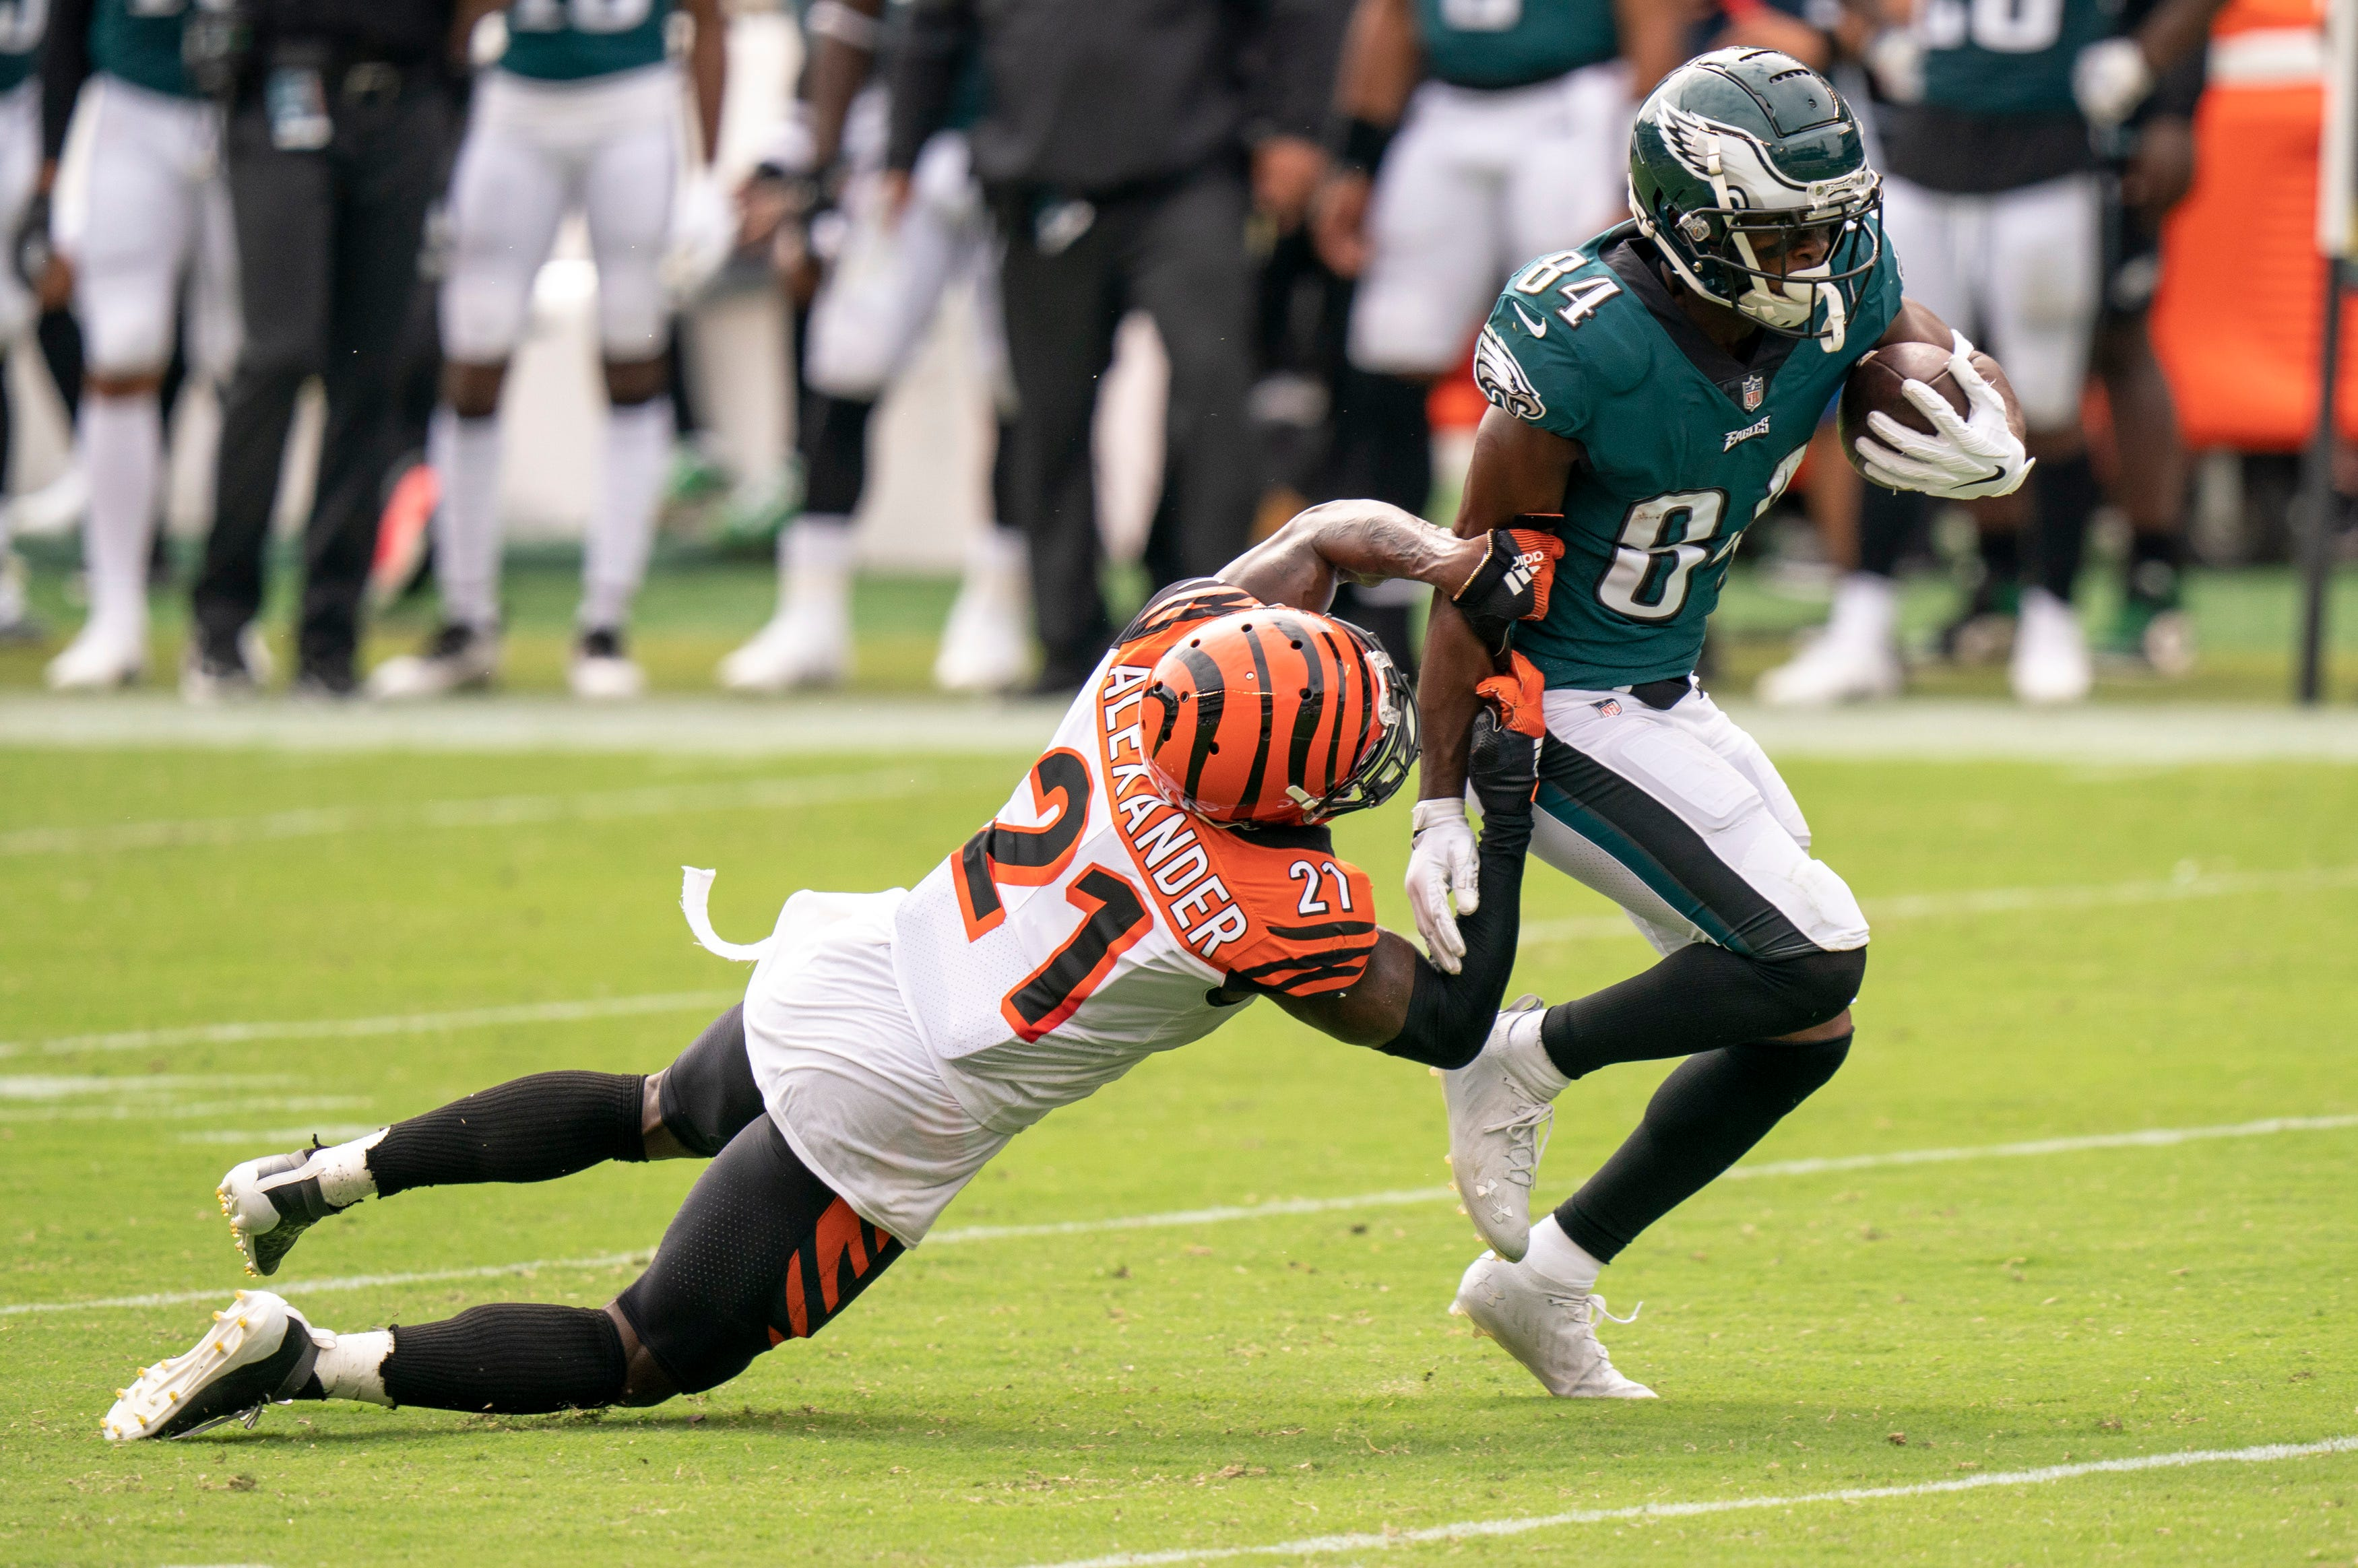 Eagles have one healthy wide receiver on 53-man roster